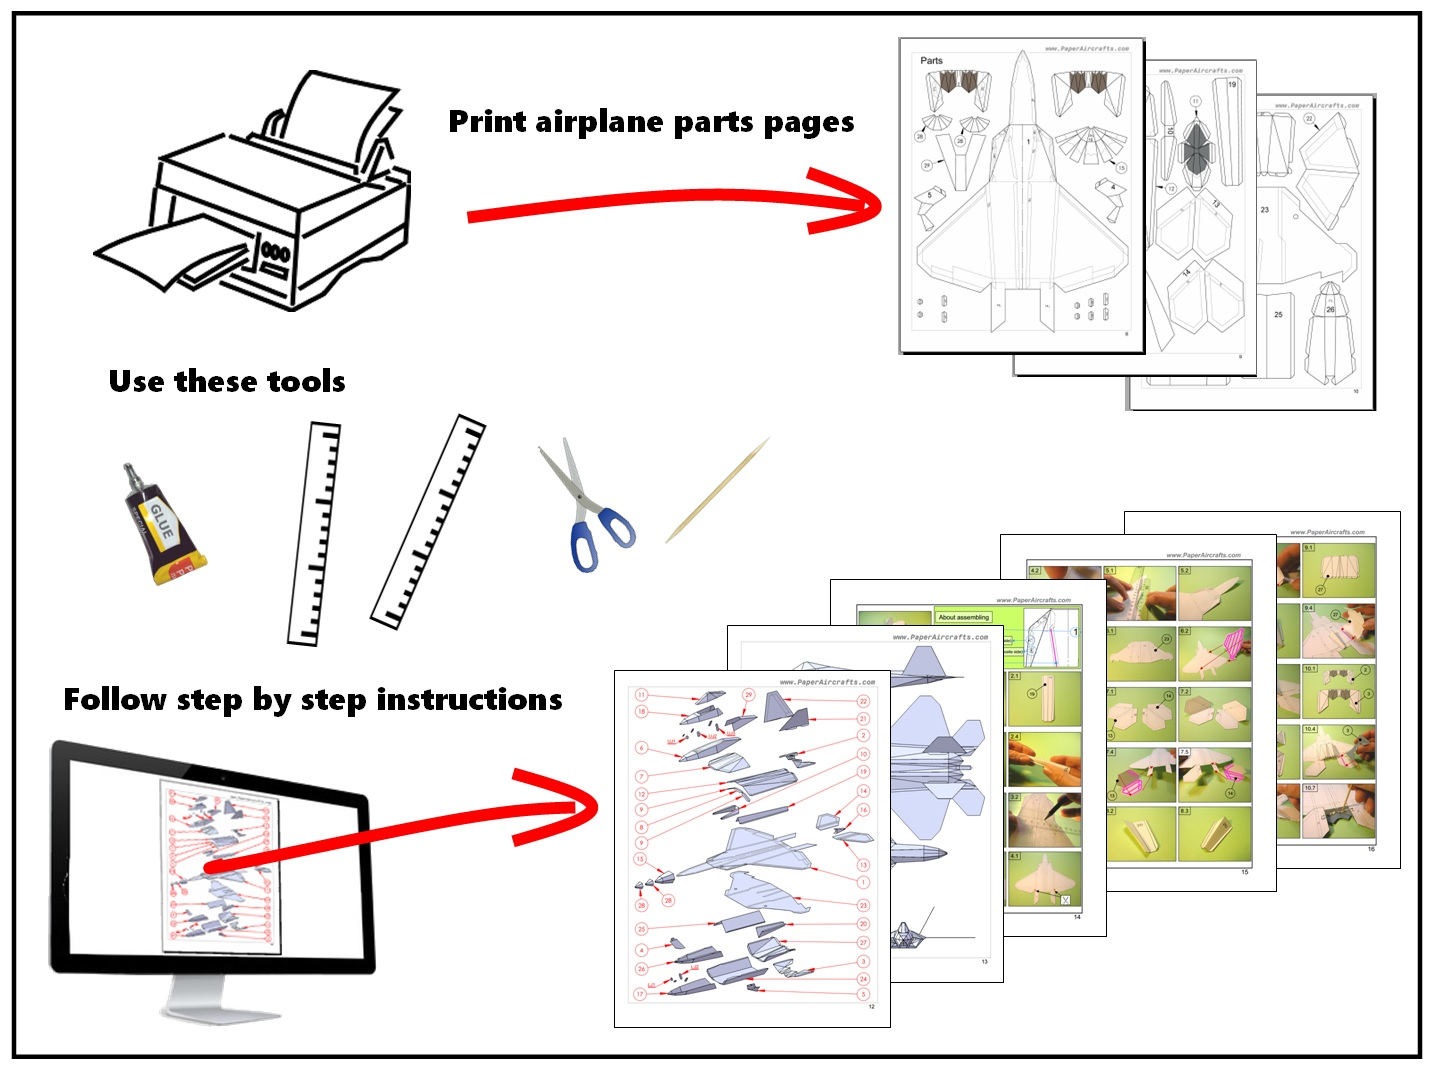 Paperaircrafts 3d Origami Diagram Free Download Get Creative Building Paper Aircraft Youre Minutes Away From Constructing And Flying A Realistic Our Instantly Downloadable Guides